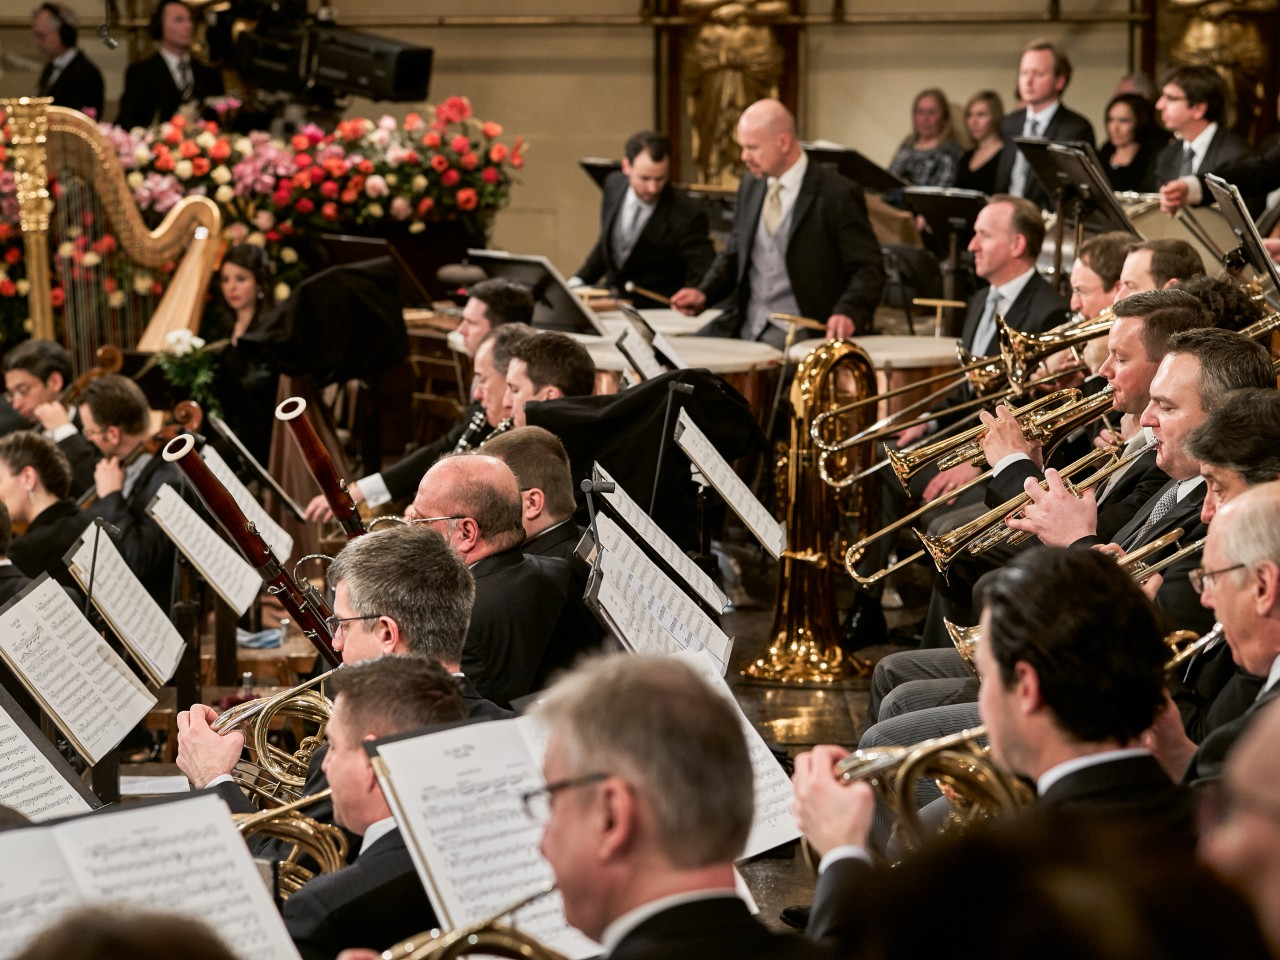 Baden Baden Advent Music Festival for Choirs & Orchestras